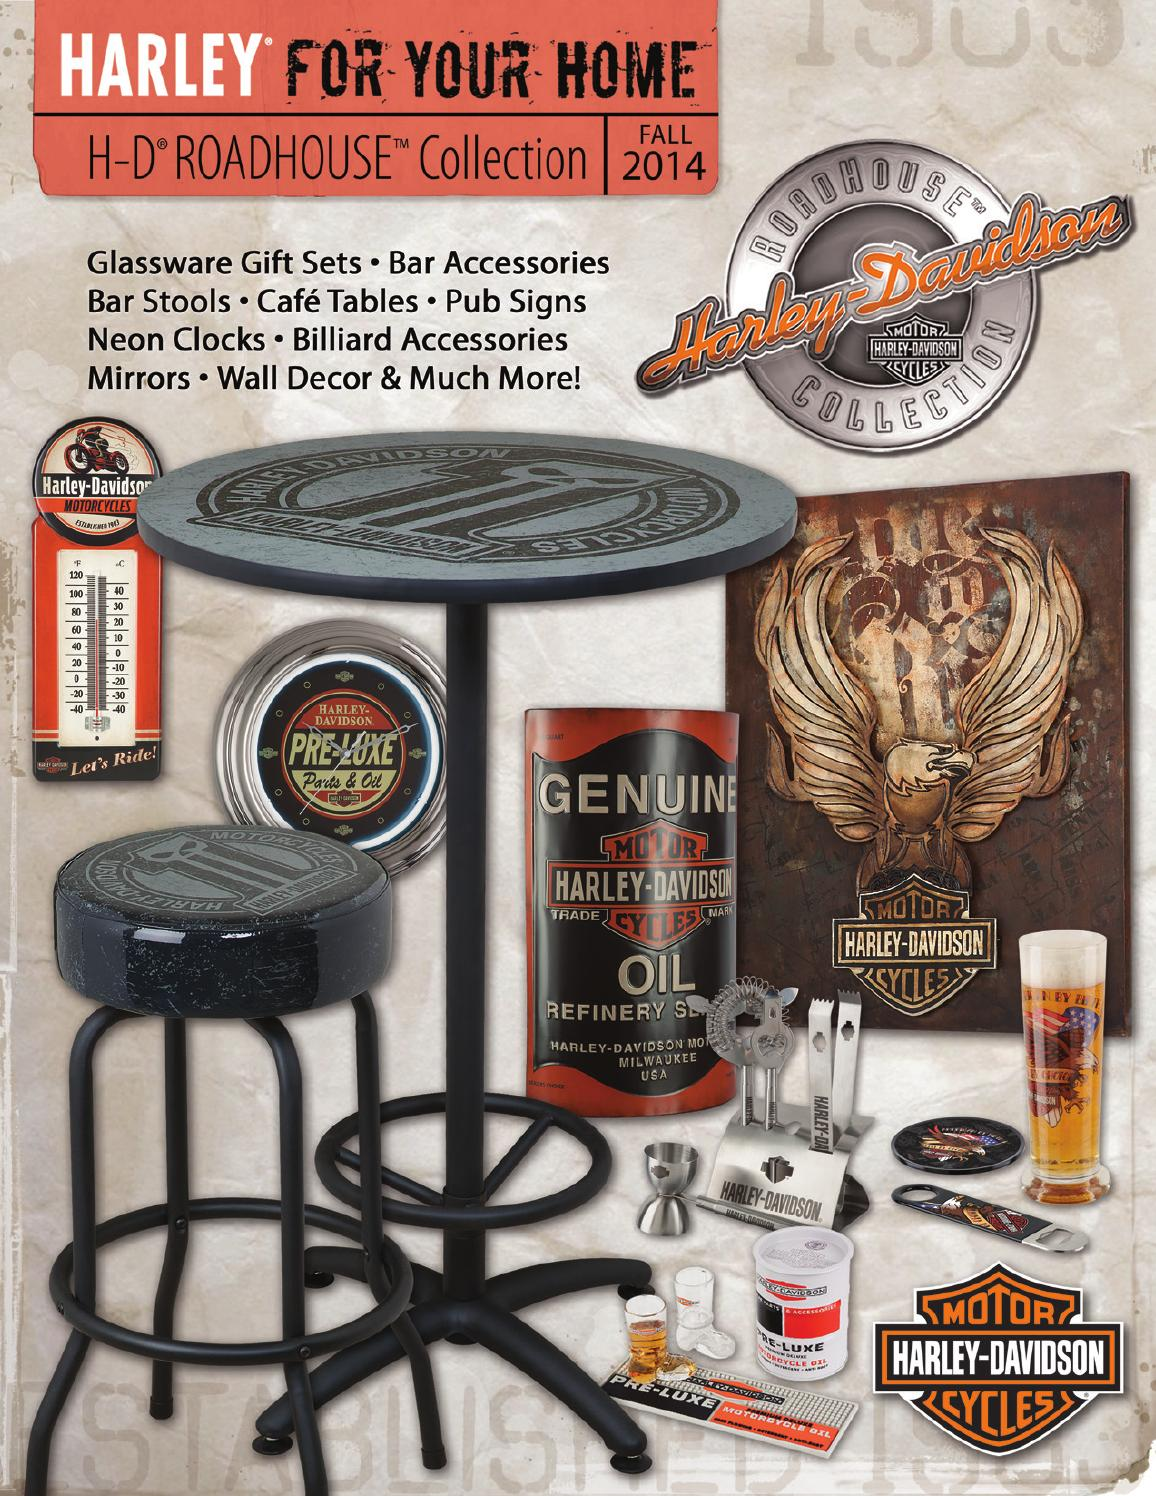 Harley Davidson 174 Roadhouse Collection Fall 2014 Catalog